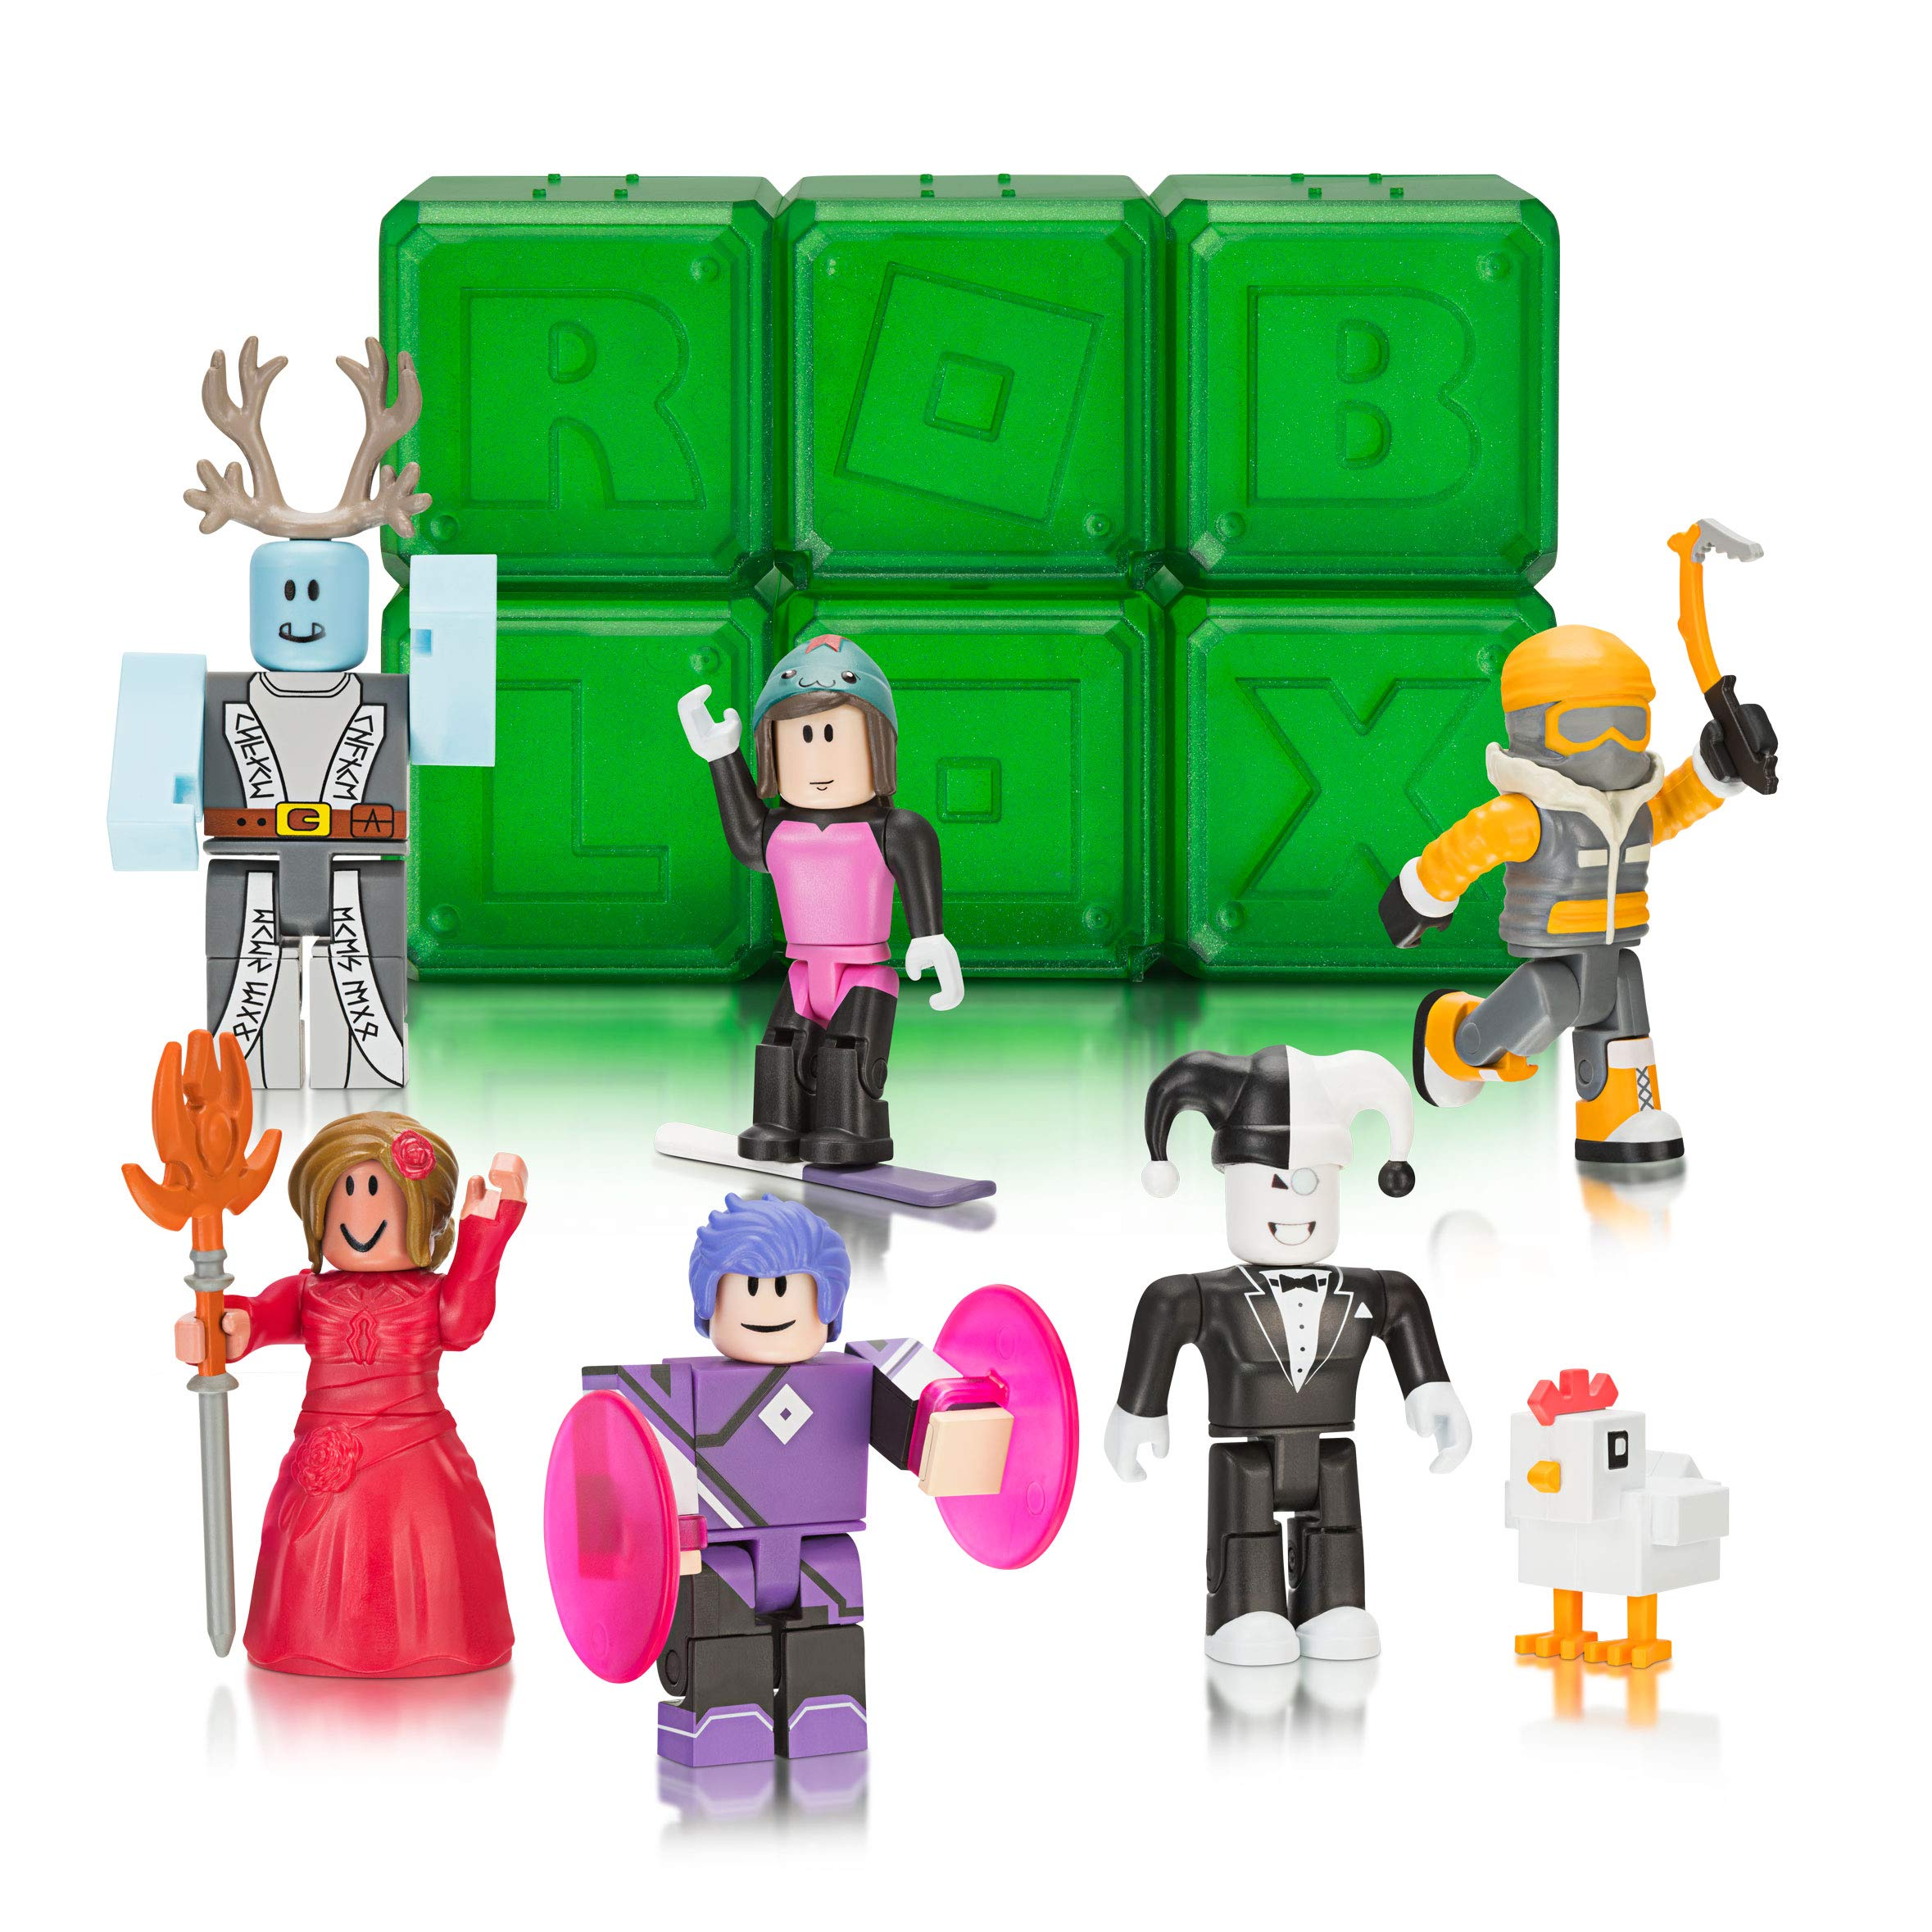 How To Make Roblox Character Amazon Com Roblox Celebrity Collection Series 4 Mystery Figure 6 Pack Includes 6 Exclusive Virtual Items Toys Games